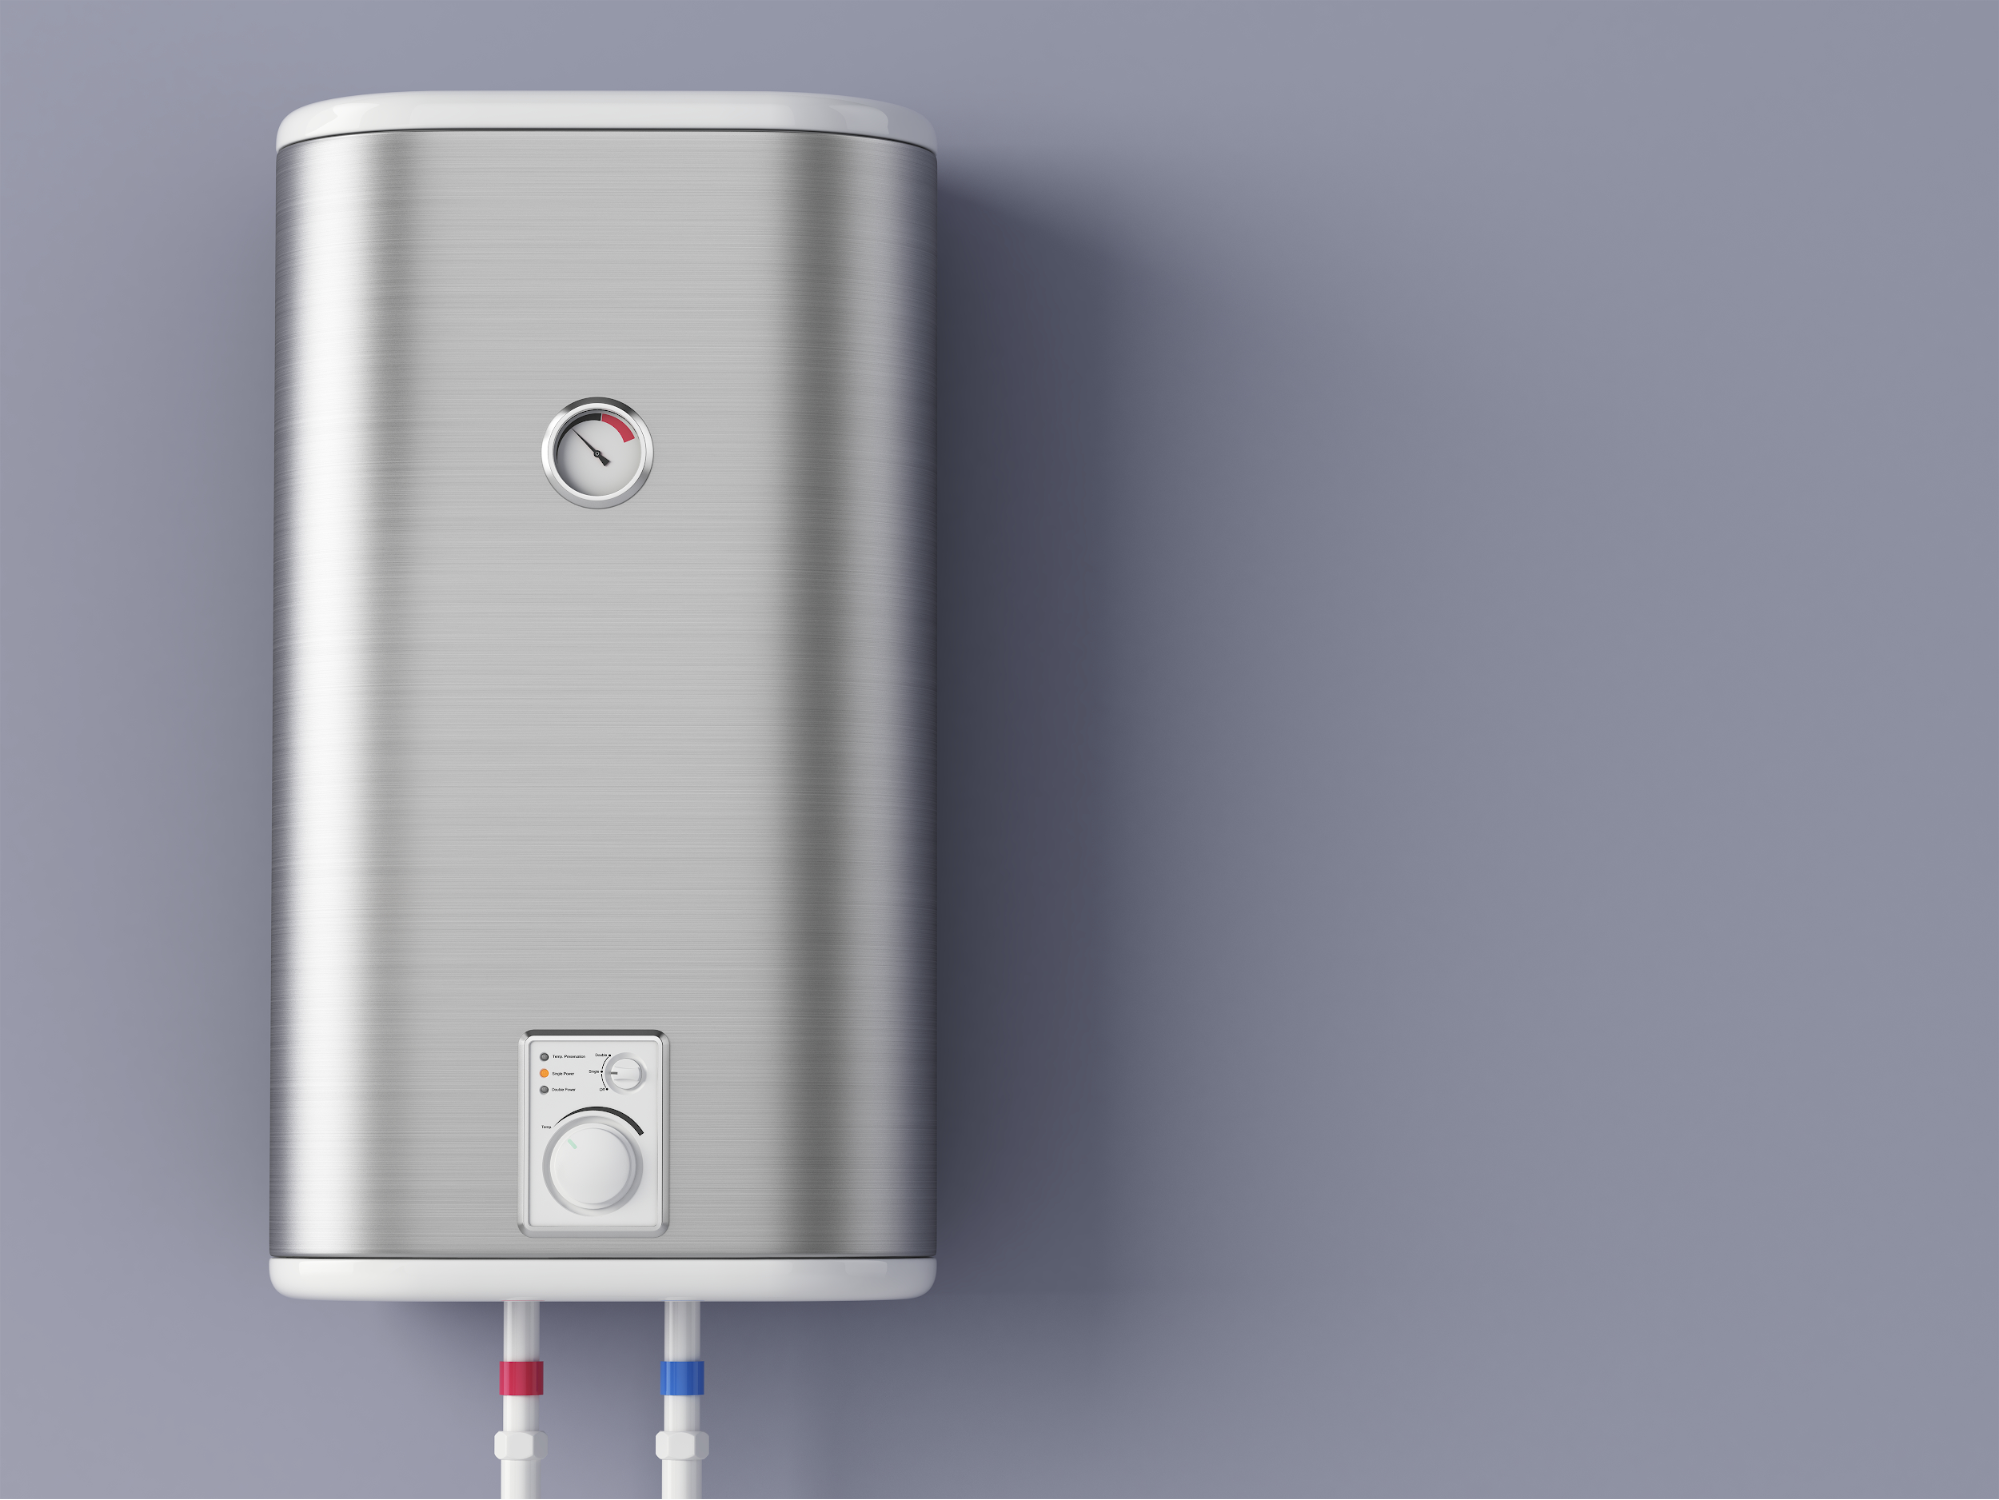 Water heater against a gray background. Reichelt Plumbing, Inc.